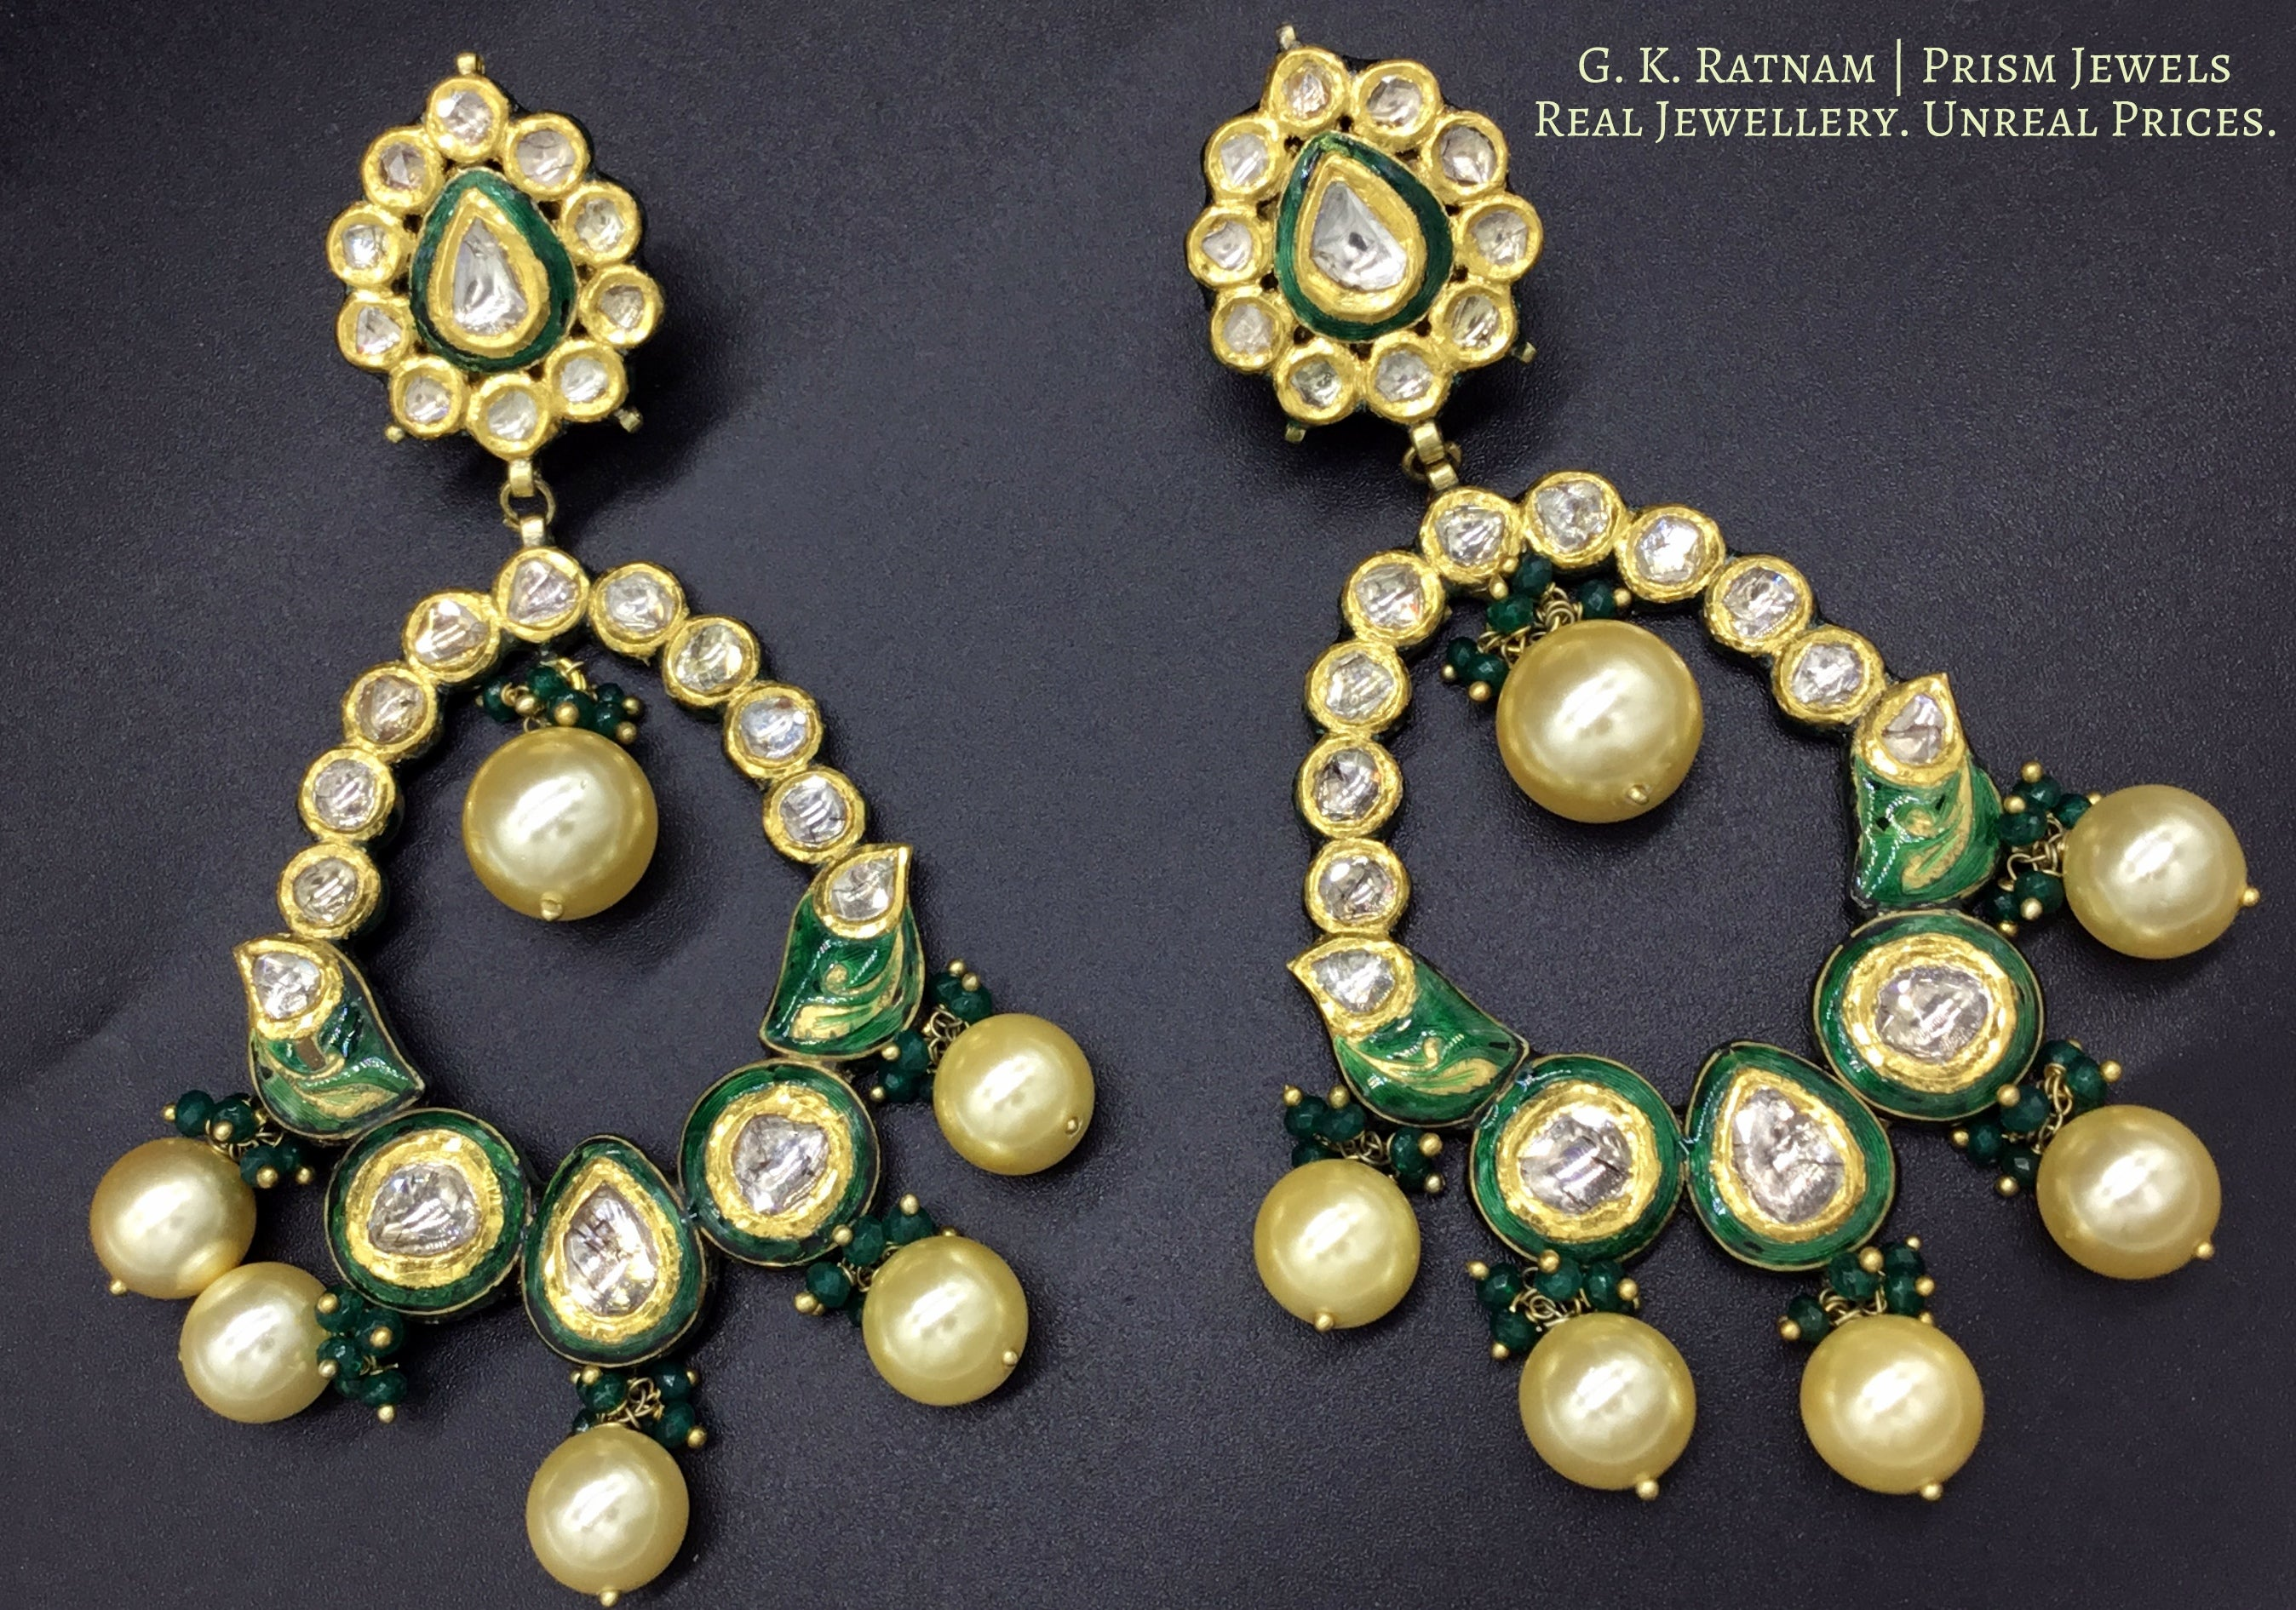 18k Gold and Diamond Polki floral Chand Bali Earring Pair with green enamelling - G. K. Ratnam